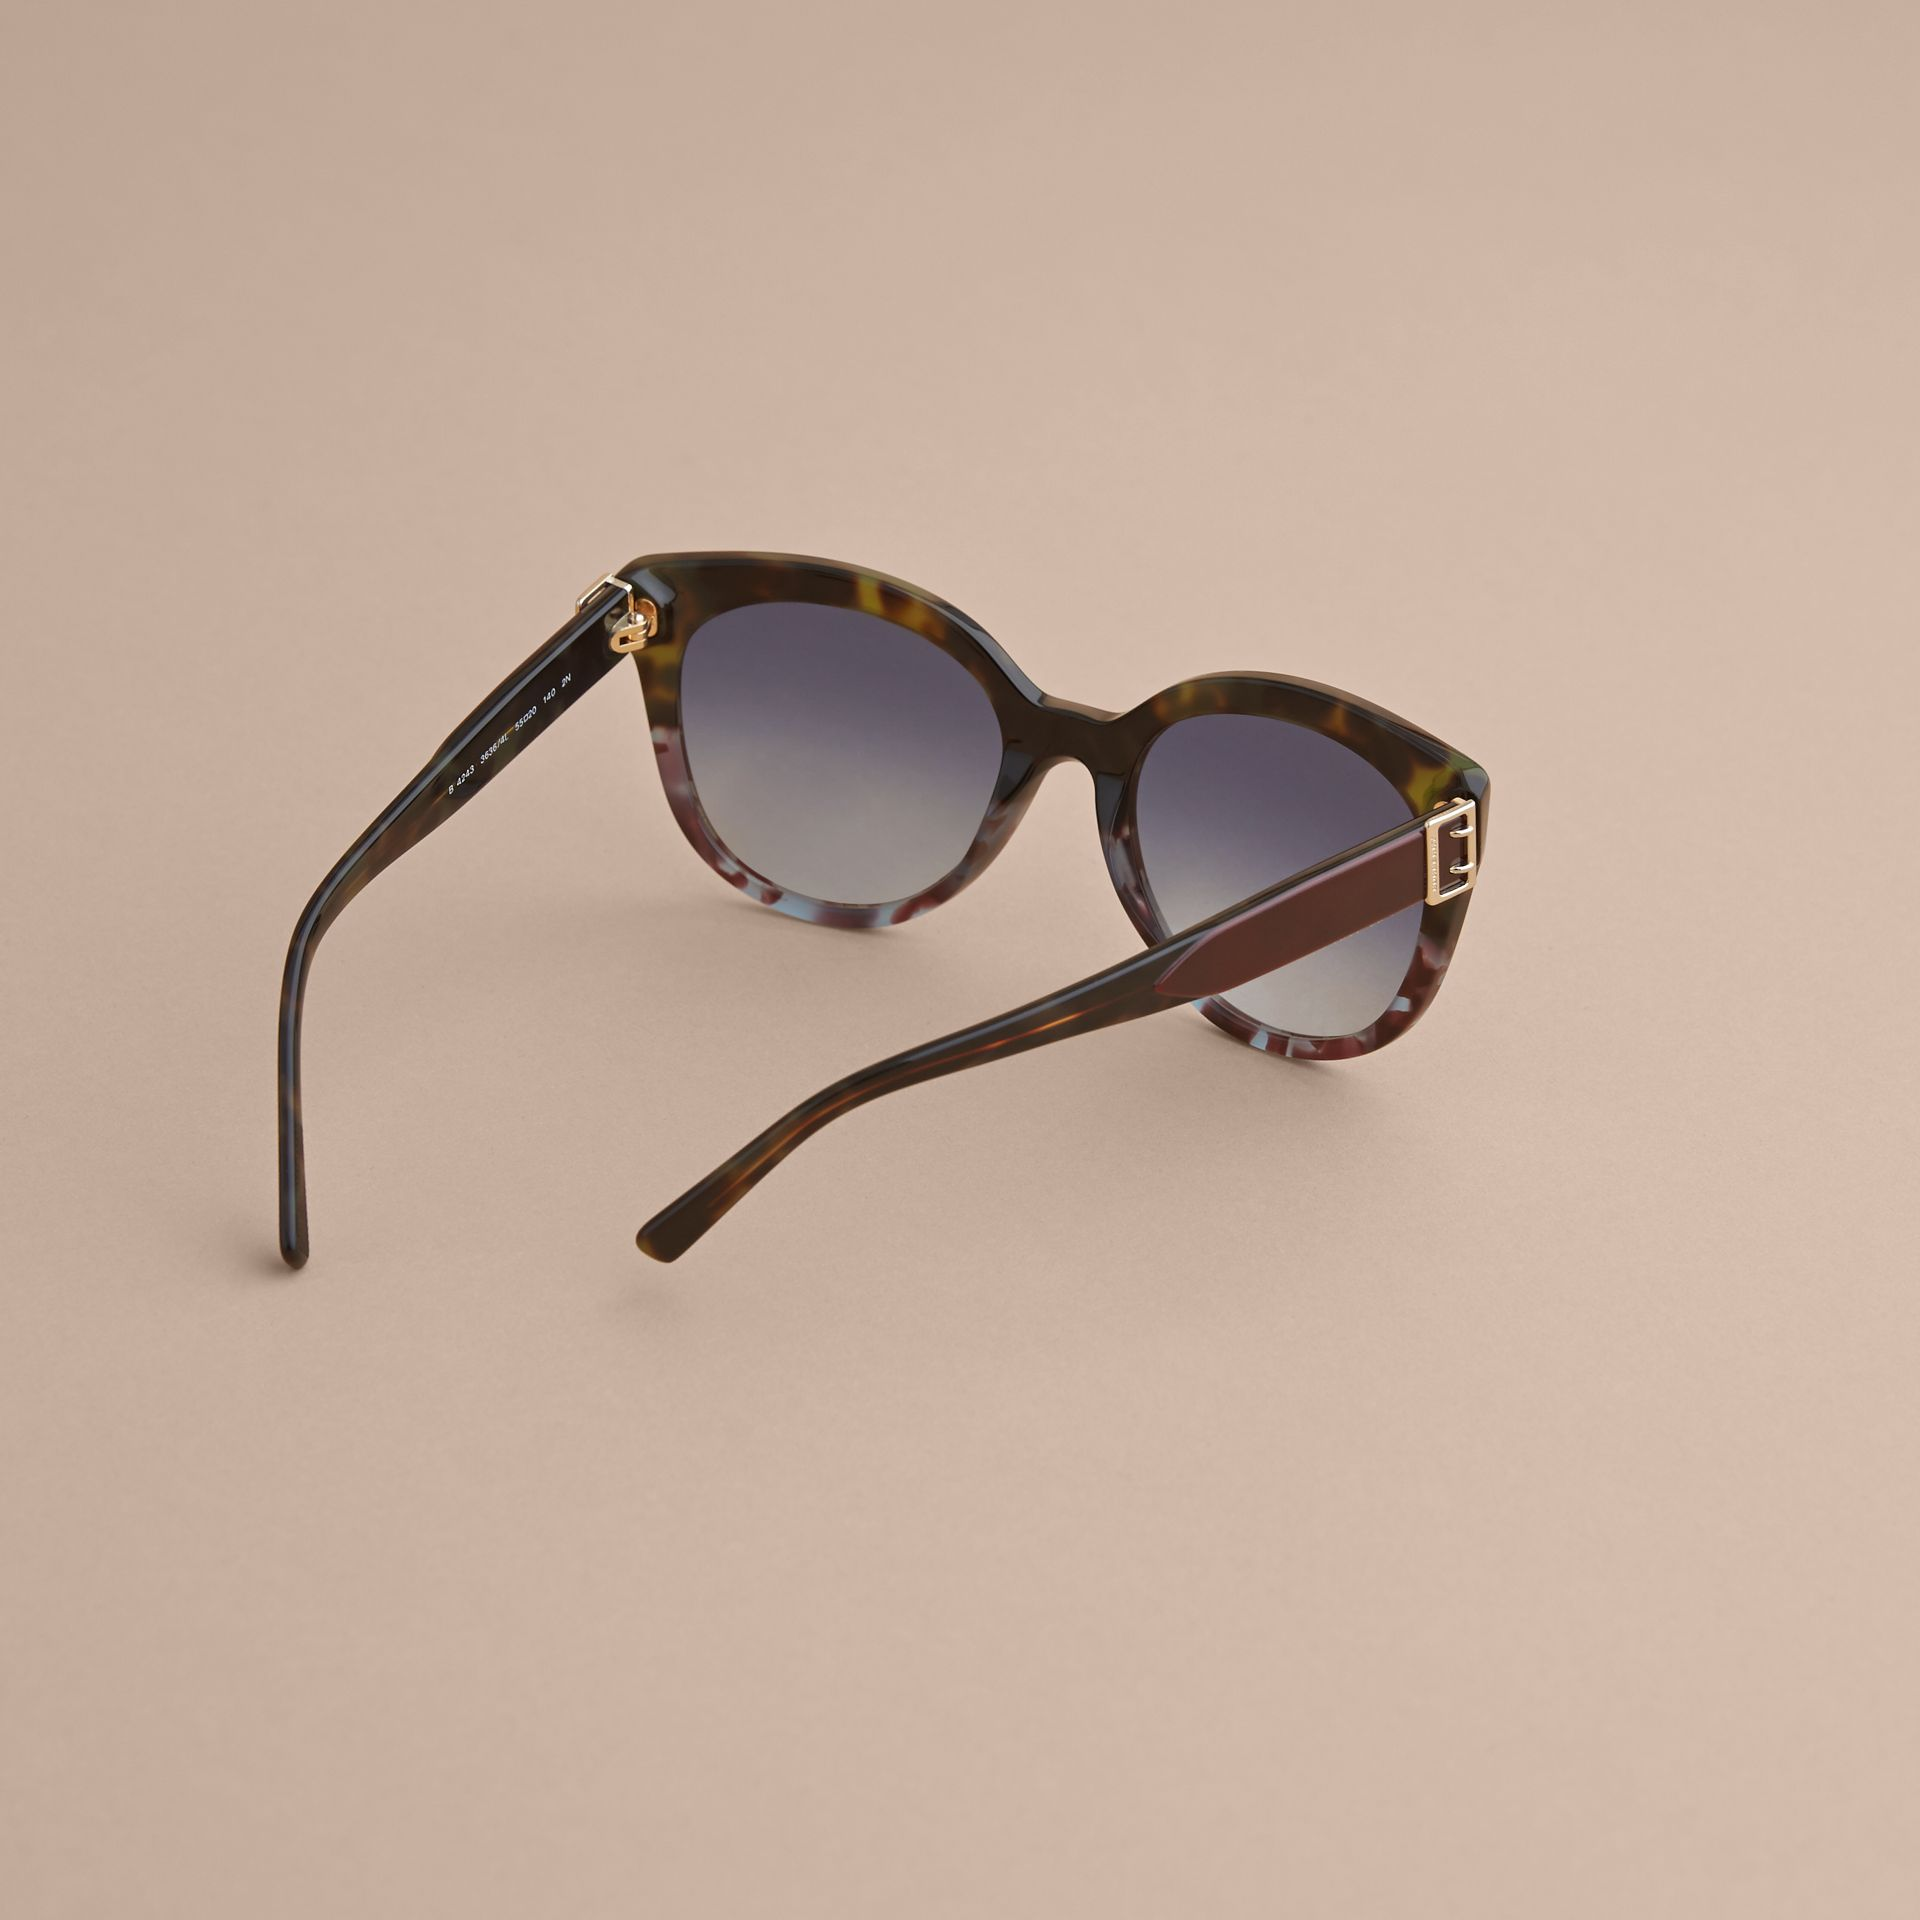 Buckle Detail Cat-eye Frame Sunglasses in Apple Green - Women | Burberry Hong Kong - gallery image 3